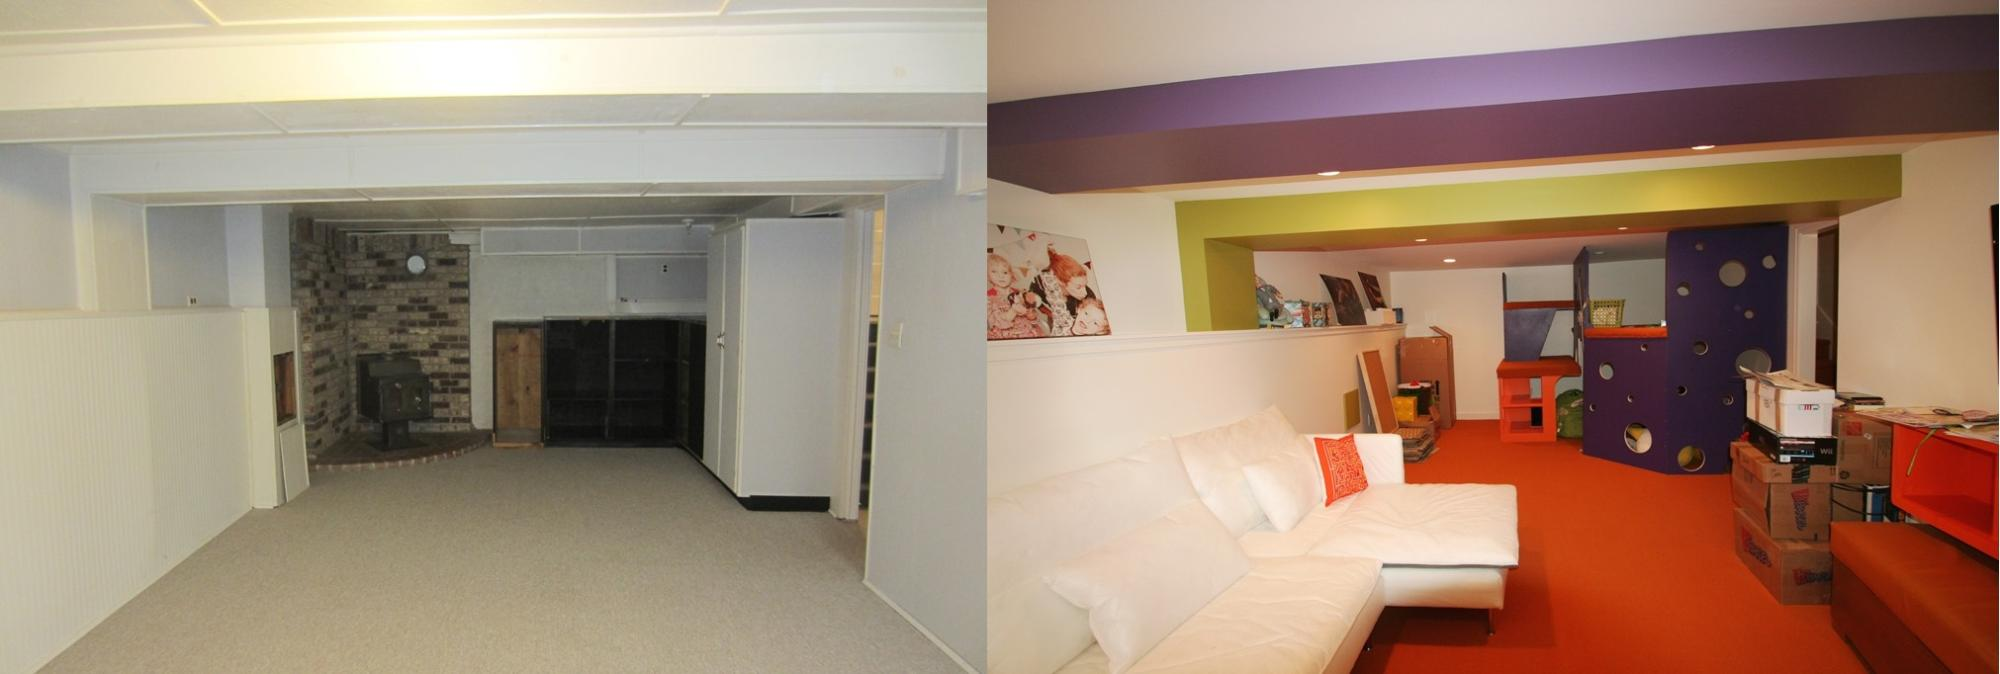 before___after_basement_2.jpg